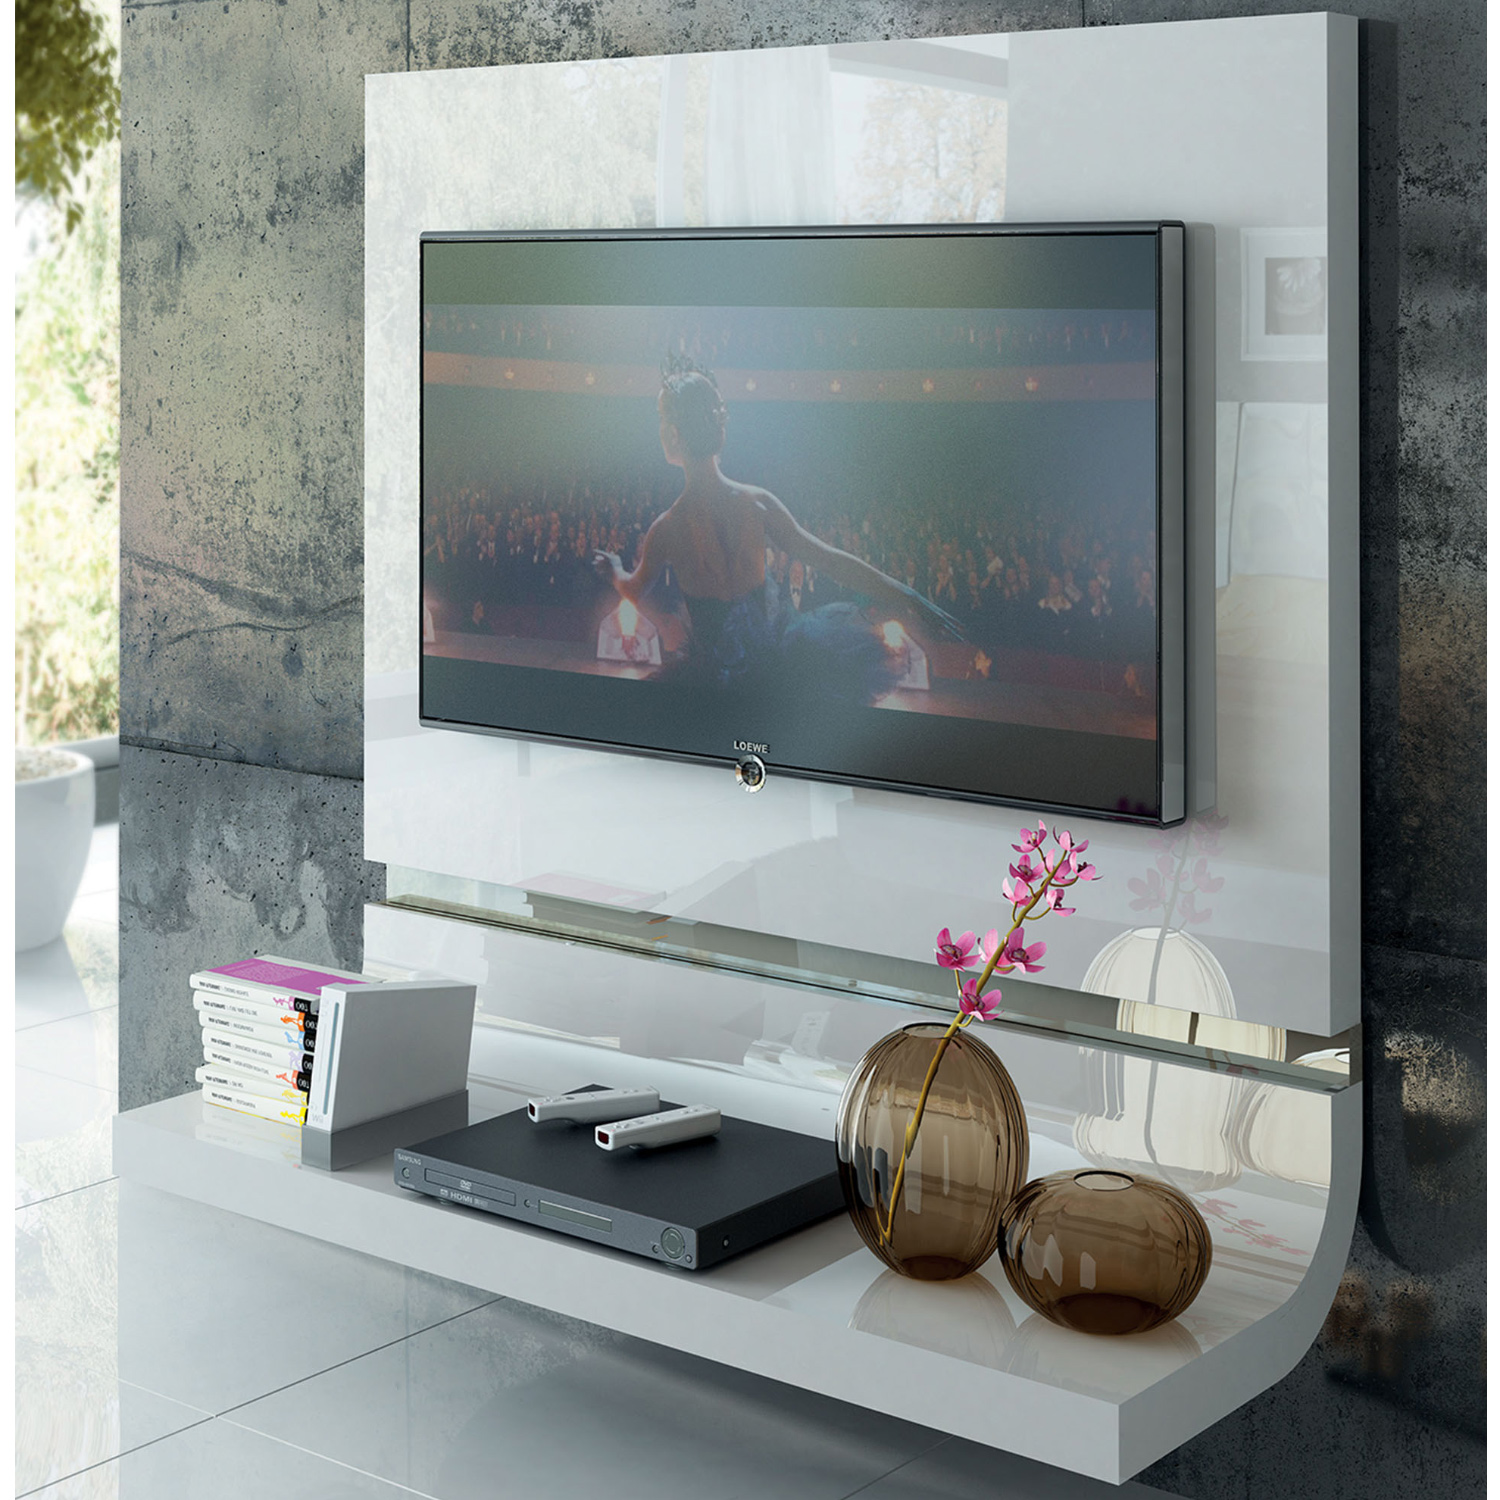 Granada Tv Wall Panel In High Gloss White Arena By Esf Furniture Imports